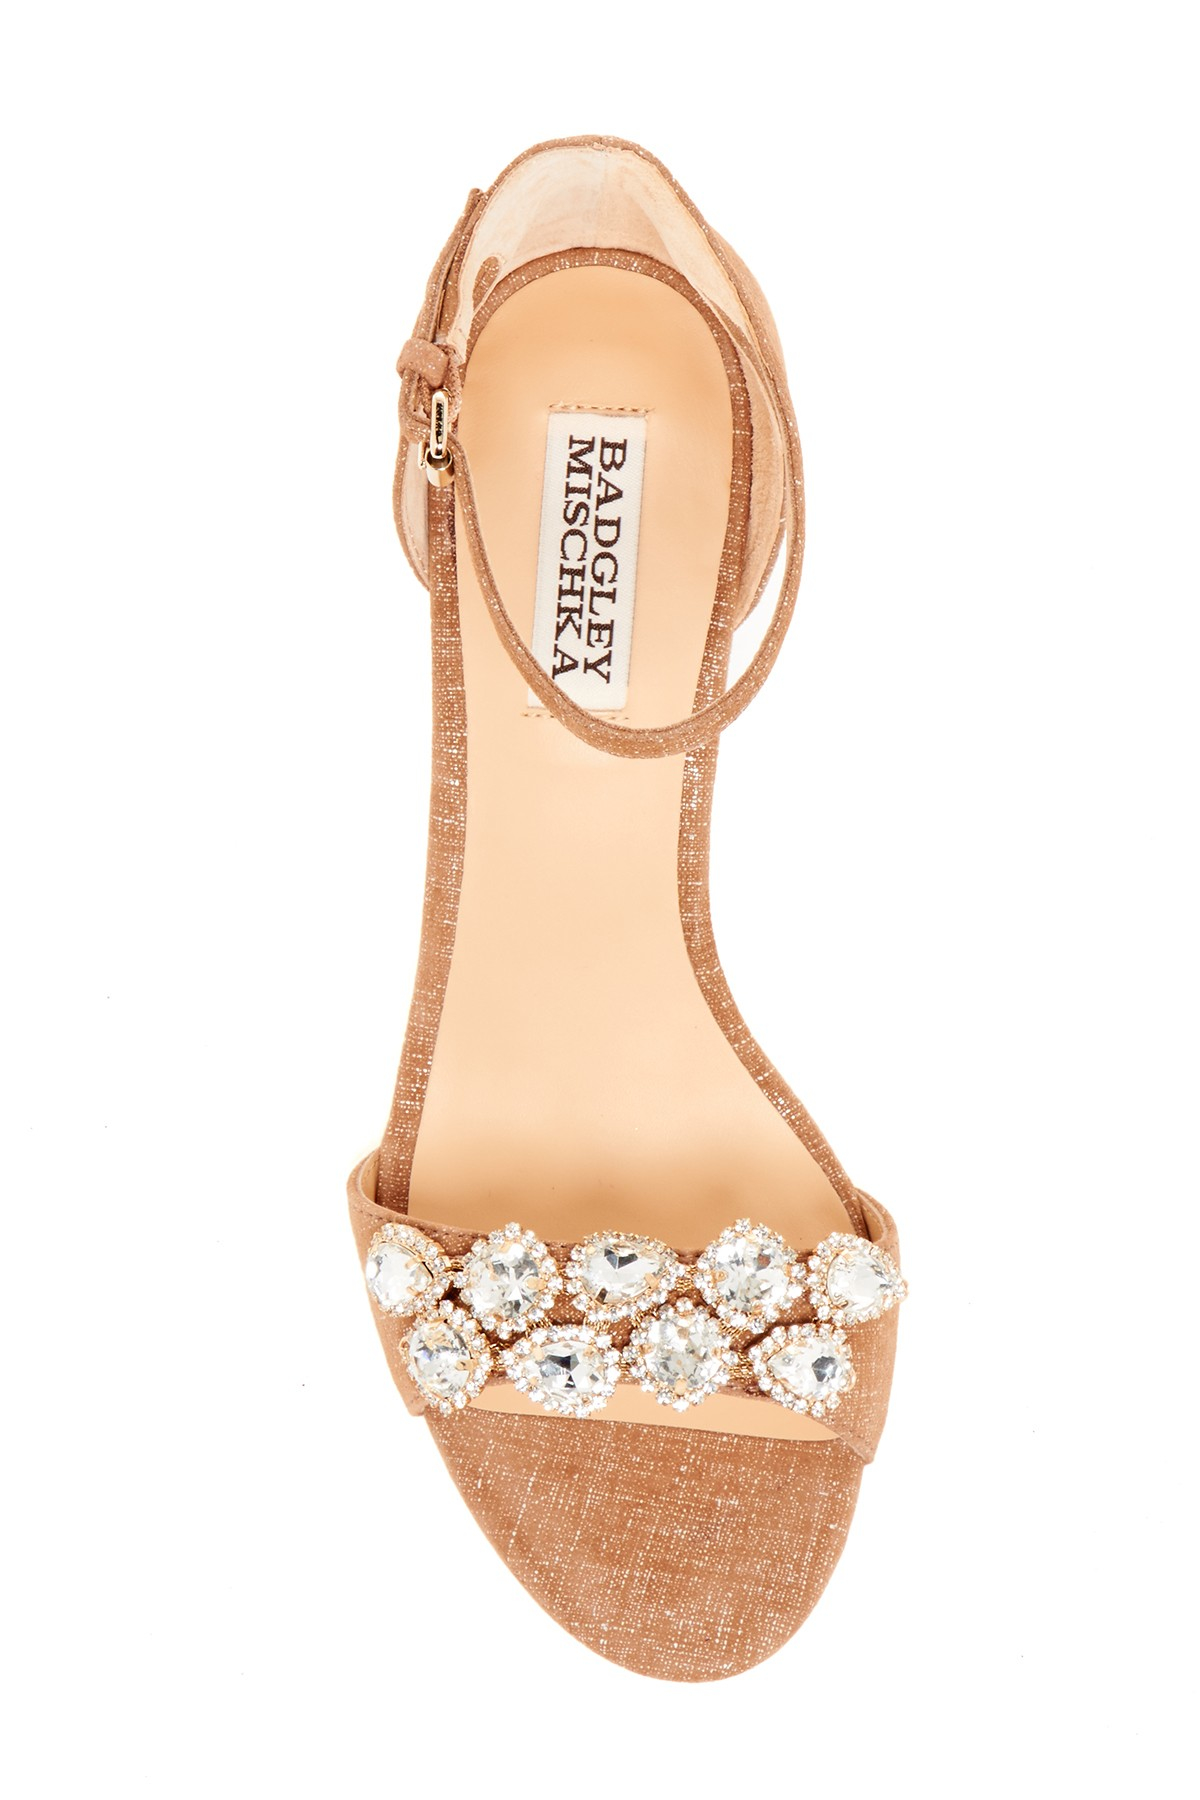 Lyst Badgley Mischka Clear Crystal Embellished Wedge Sandal